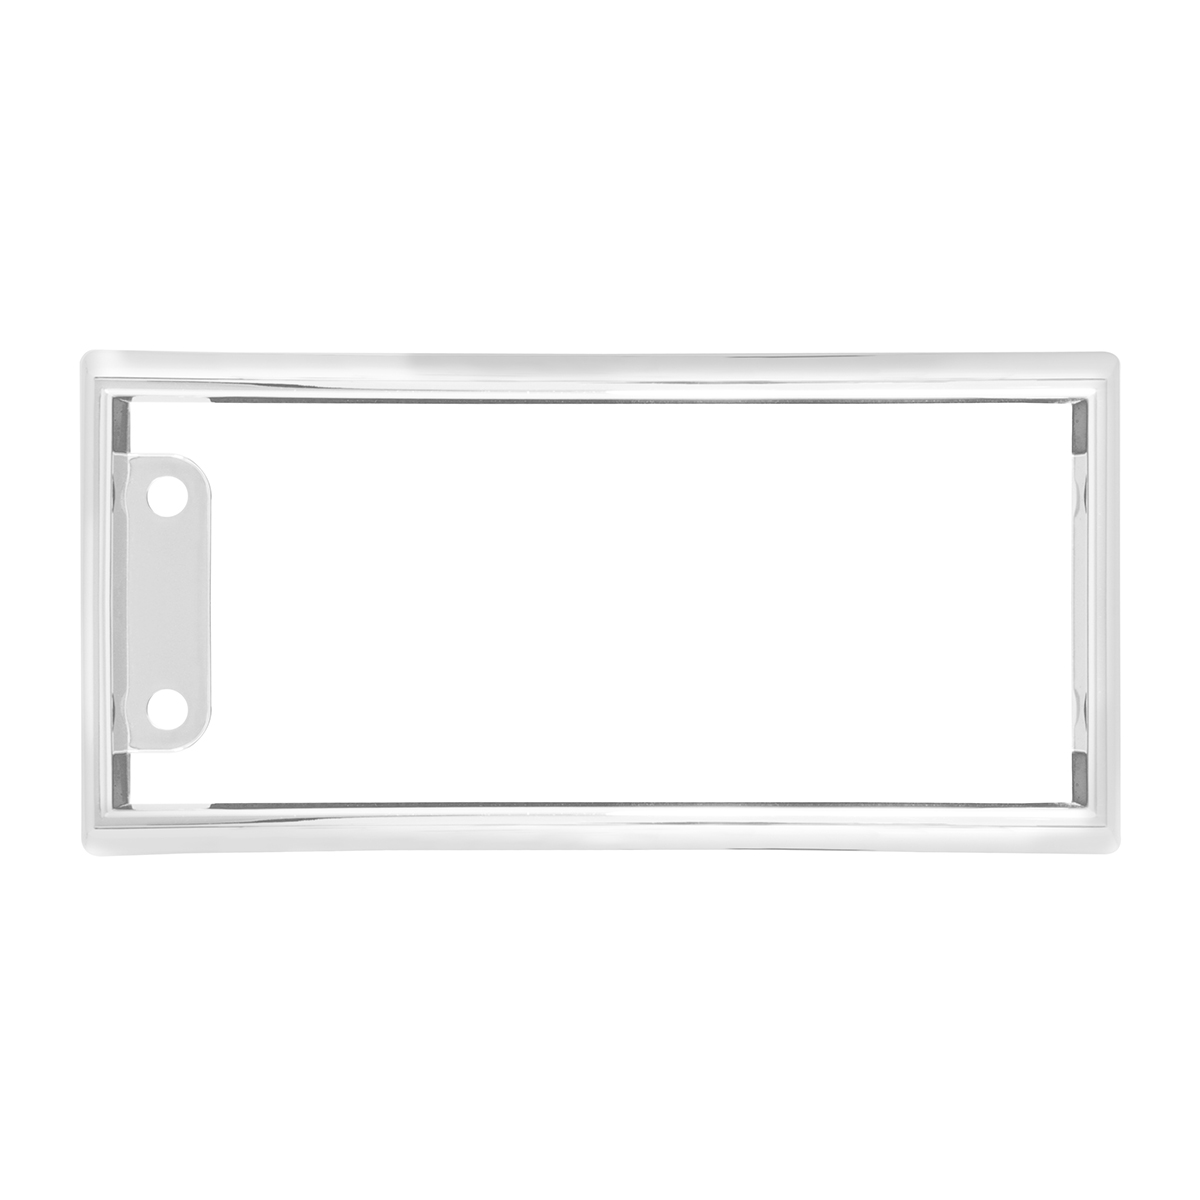 68255 Park Brake Bezel for Kenworth W